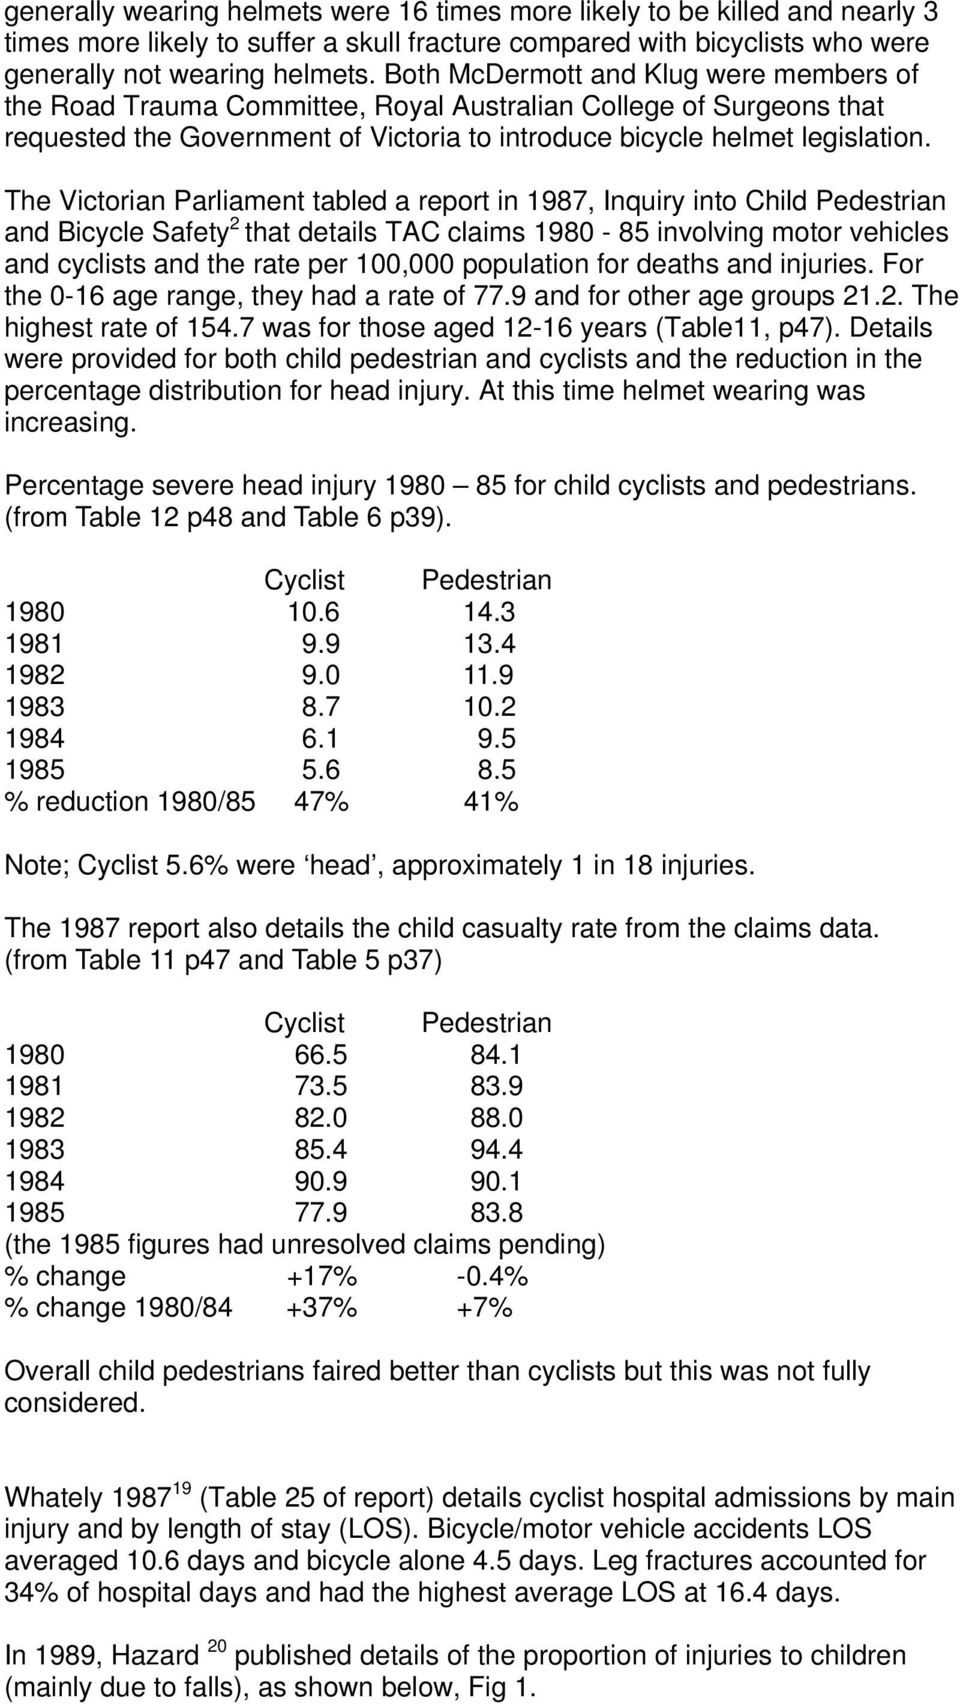 The Victorian Parliament tabled a report in 1987, Inquiry into Child Pedestrian and Bicycle Safety 2 that details TAC claims 1980-85 involving motor vehicles and cyclists and the rate per 100,000